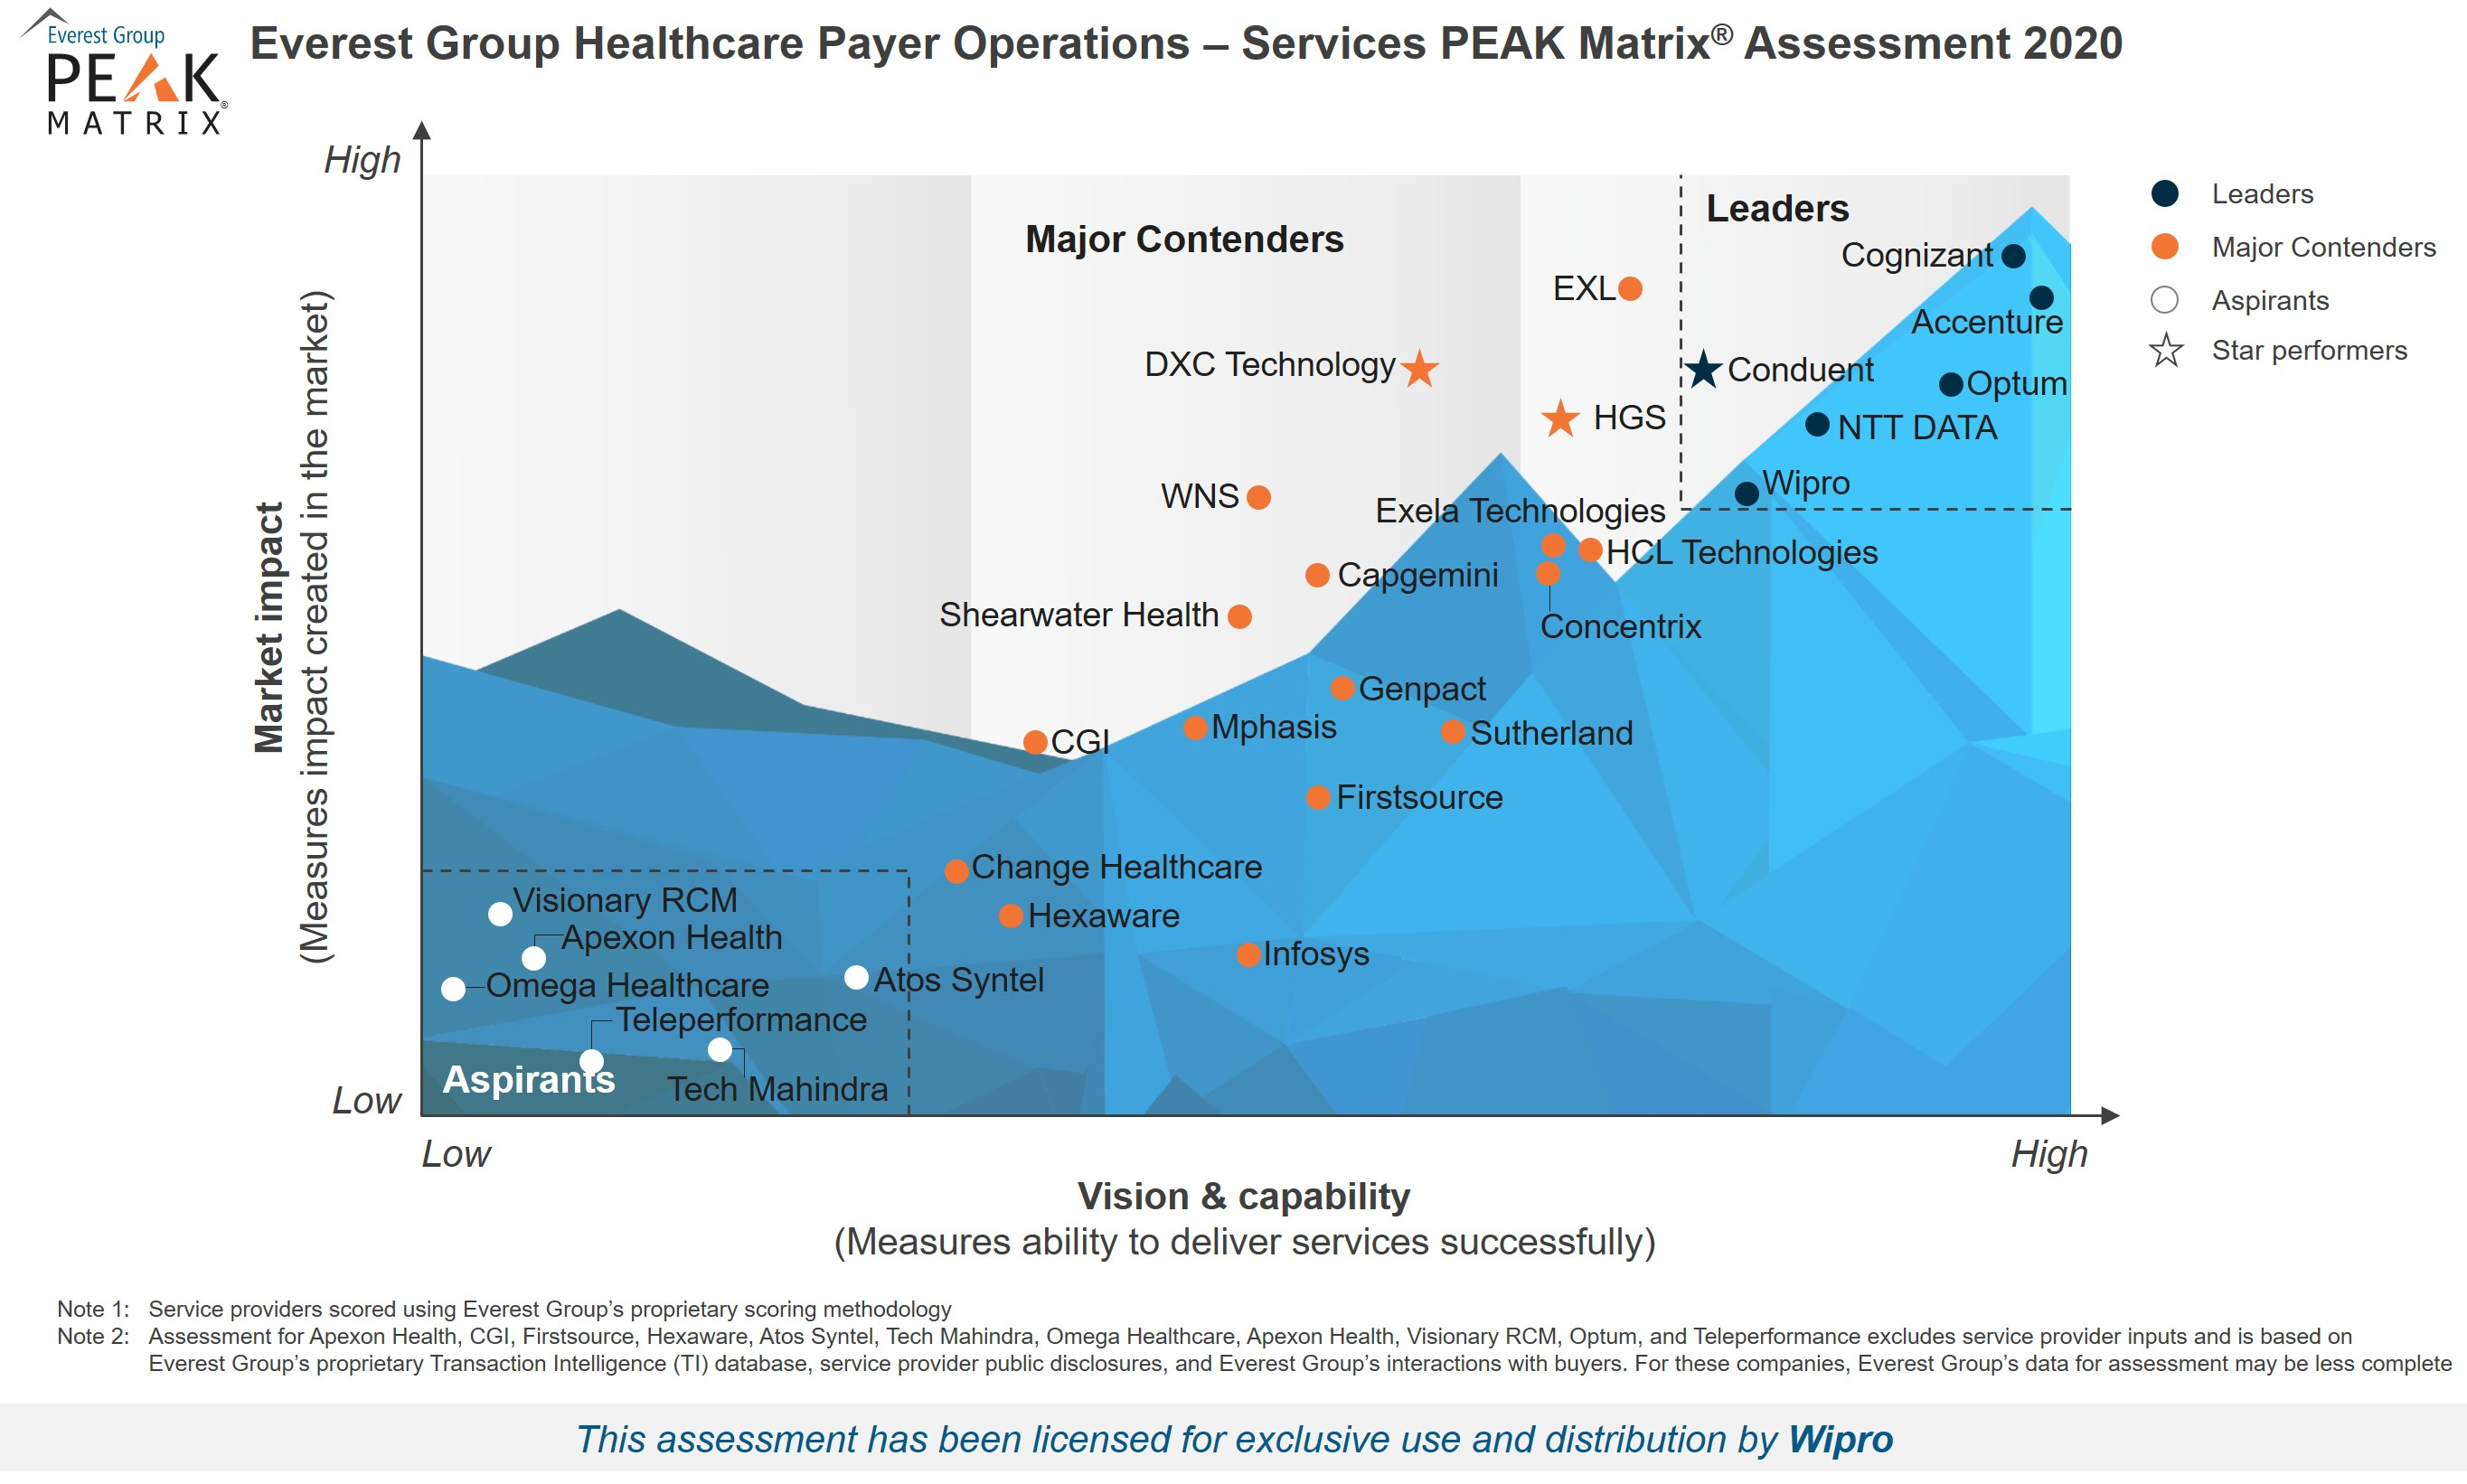 Wipro positioned as a Leader by Everest in Healthcare Payer Operations Services PEAK Matrix® Assessment 2020